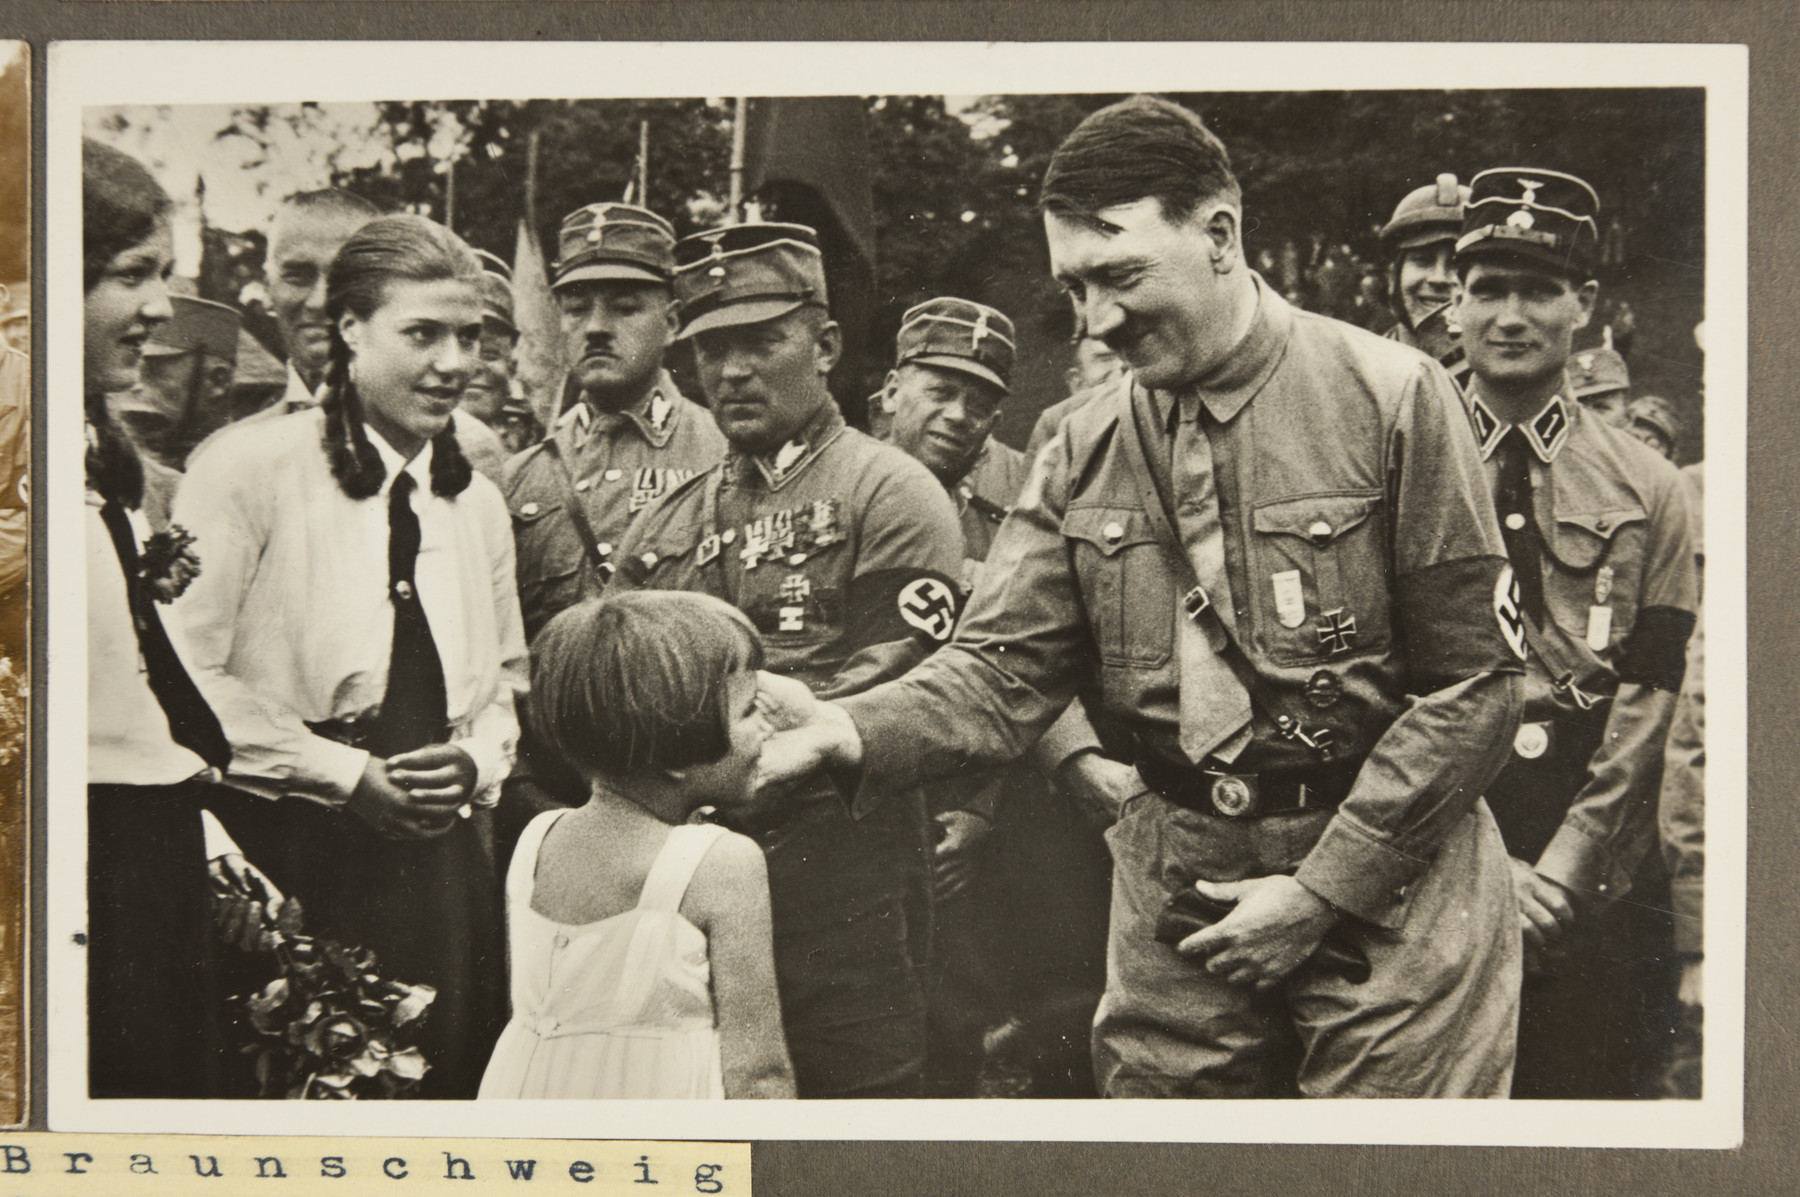 Adolf Hitler, surrounded by SA stormtroopers, greets girls during the annual Nazi Party congress in Braunschweig, Germany.   Also pictured are *(back, left to right) Wilhelm Frick (behind young woman with braids), Georg Von Detten, Manfred von Killinger, Adolf Hunleein, and Rudolf Hess.